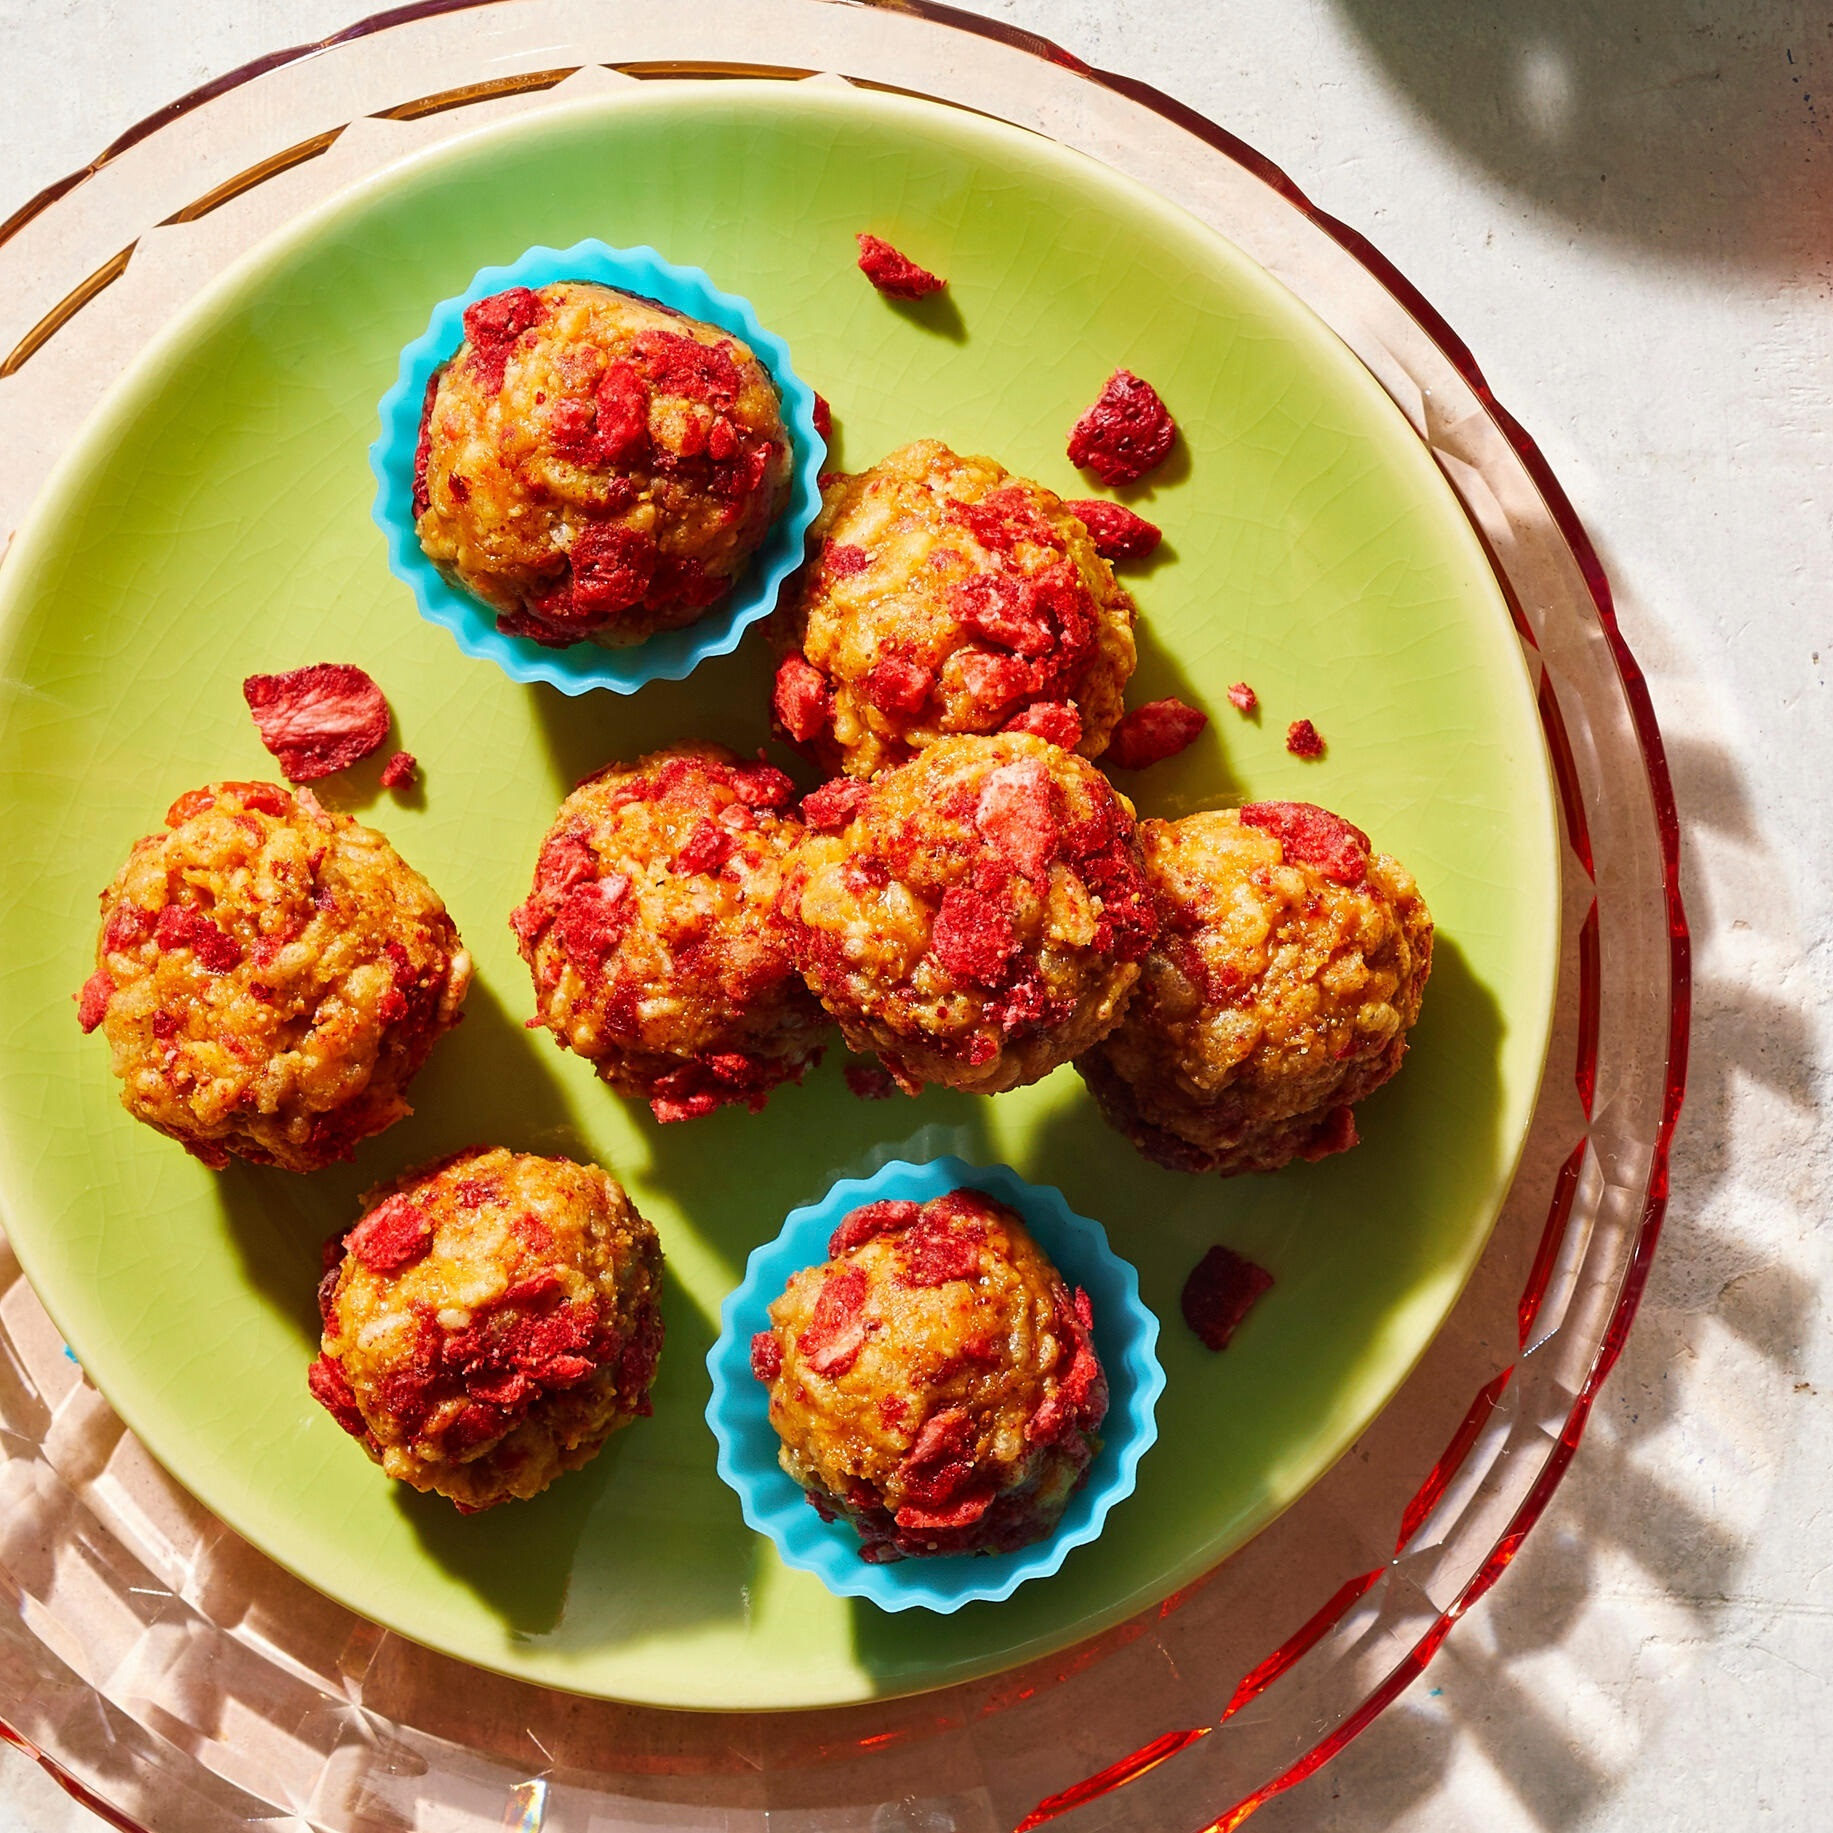 homemade Energy Balls rolled in crushed freeze-dried strawberries to make PB&J bites